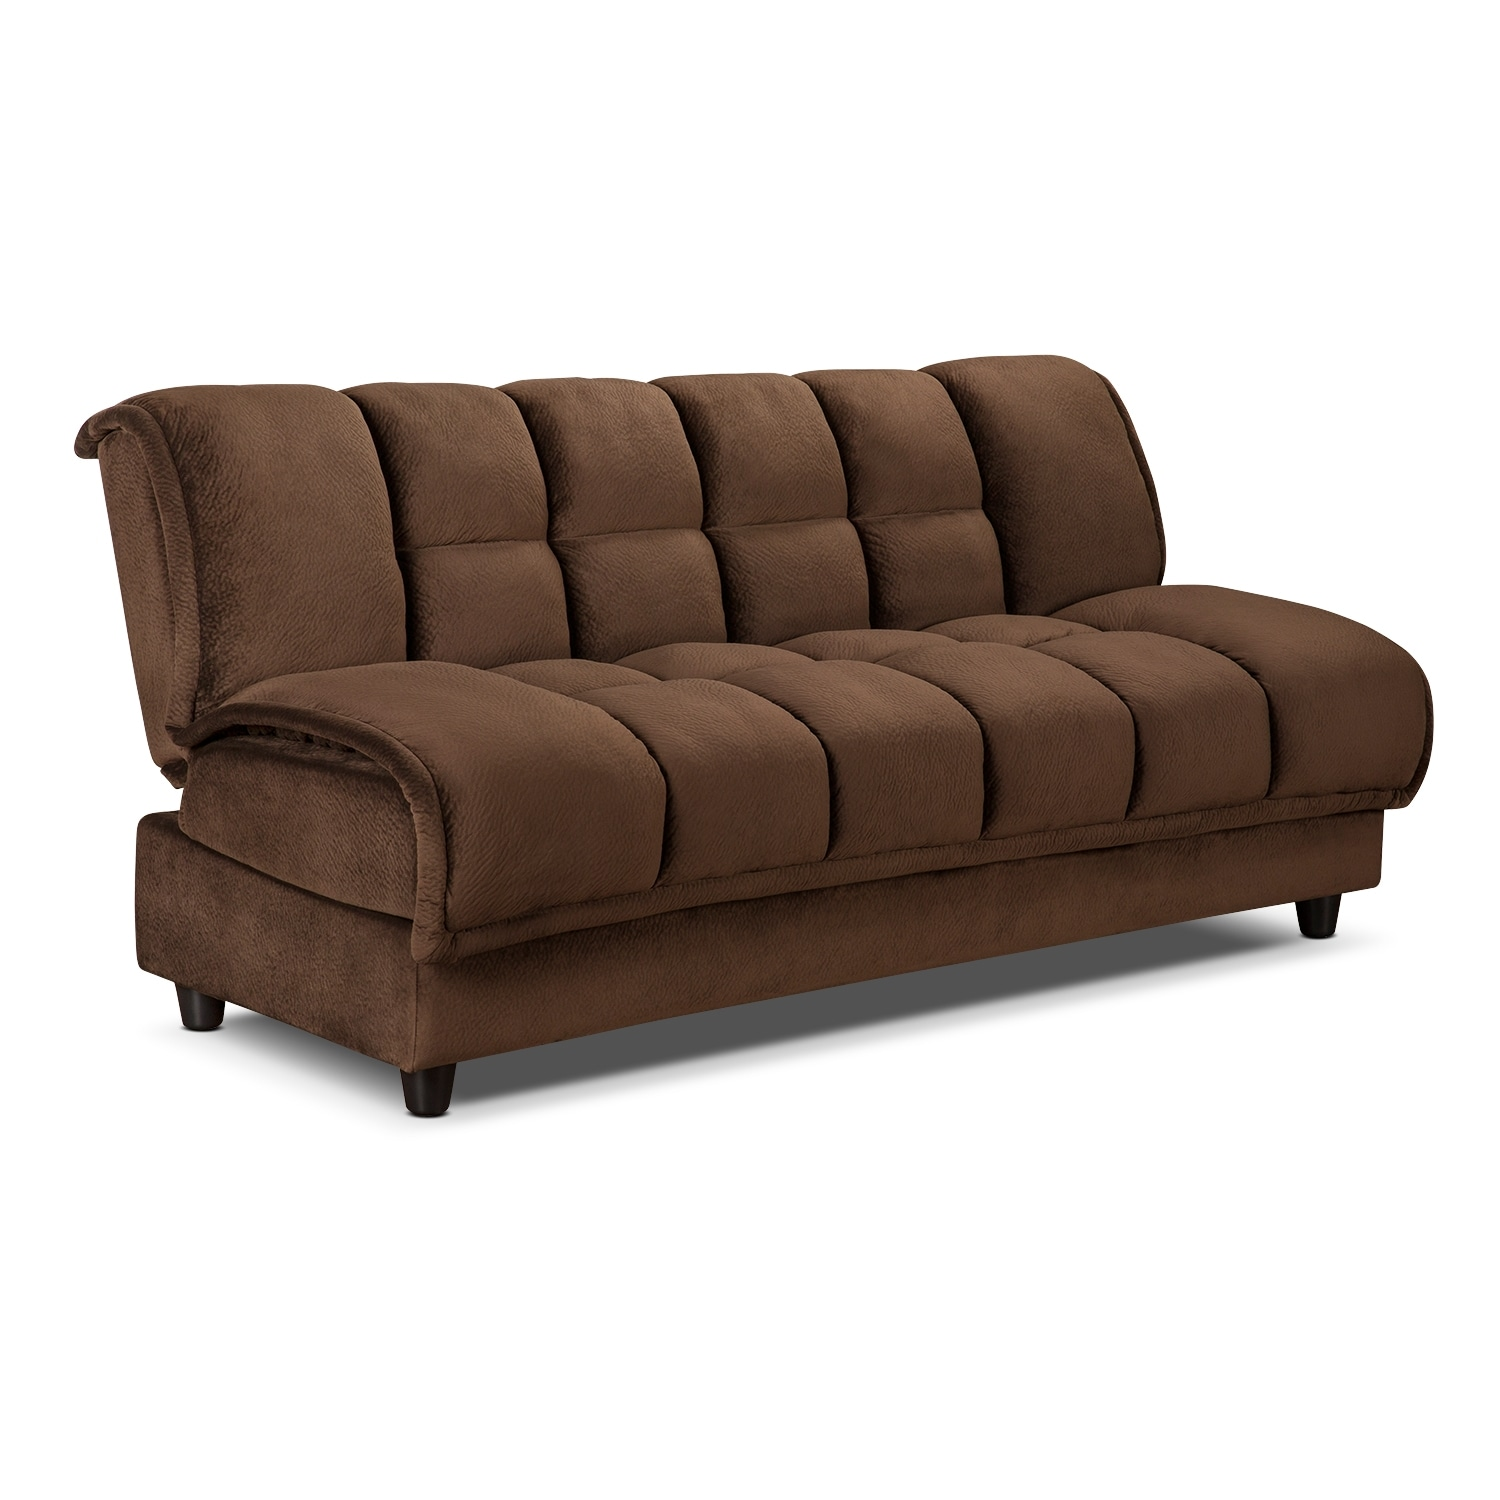 Bennett futon sofa bed value city furniture Loveseat sofa bed